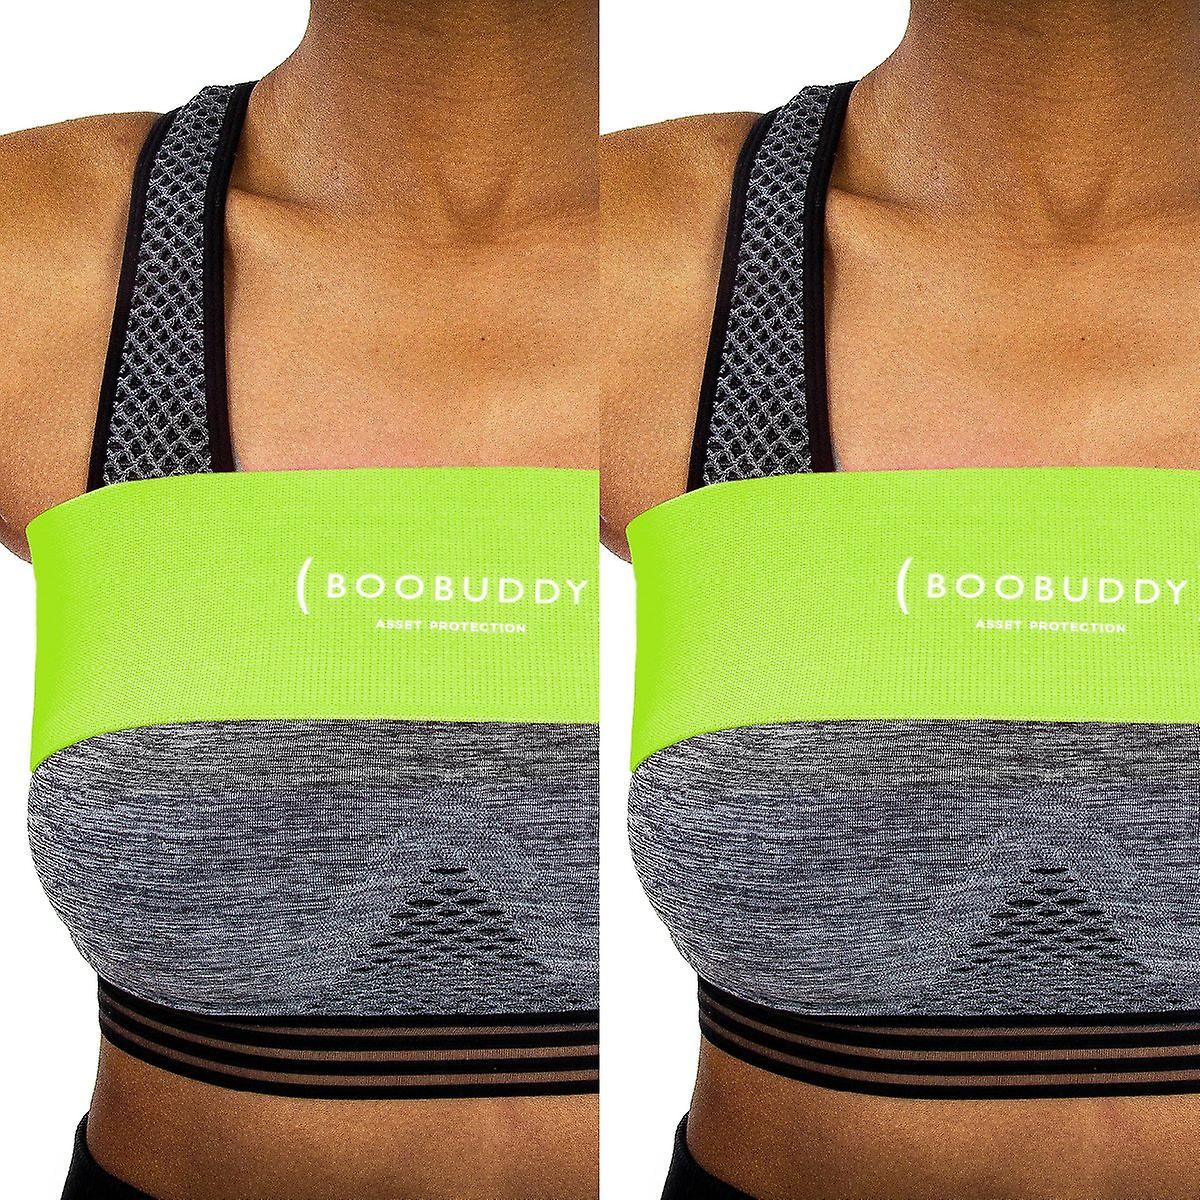 Boobuddy breast support band twin pack – green